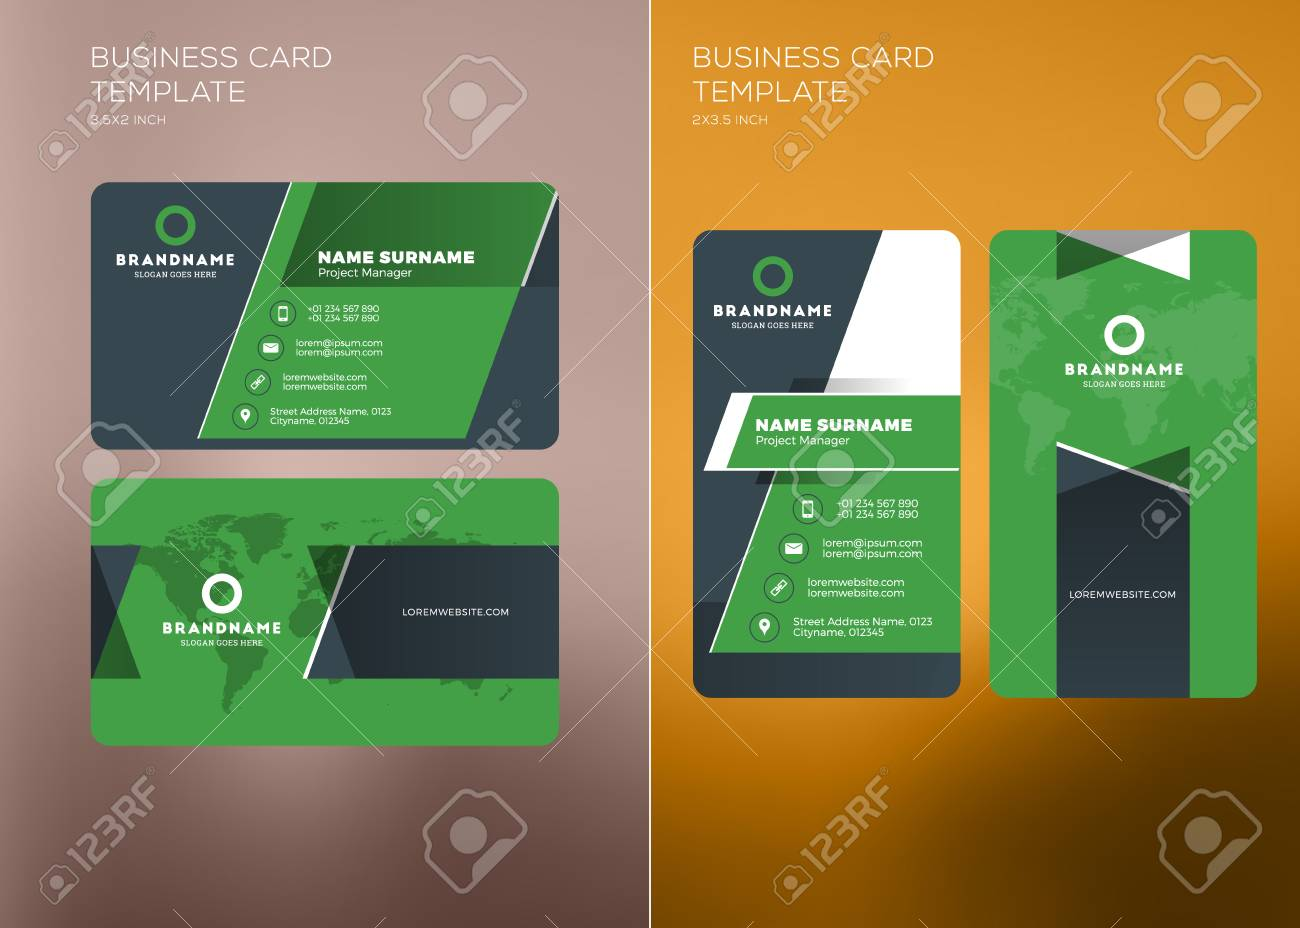 Corporate business card print template personal visiting card corporate business card print template personal visiting card with company logo vertical and horizontal wajeb Choice Image